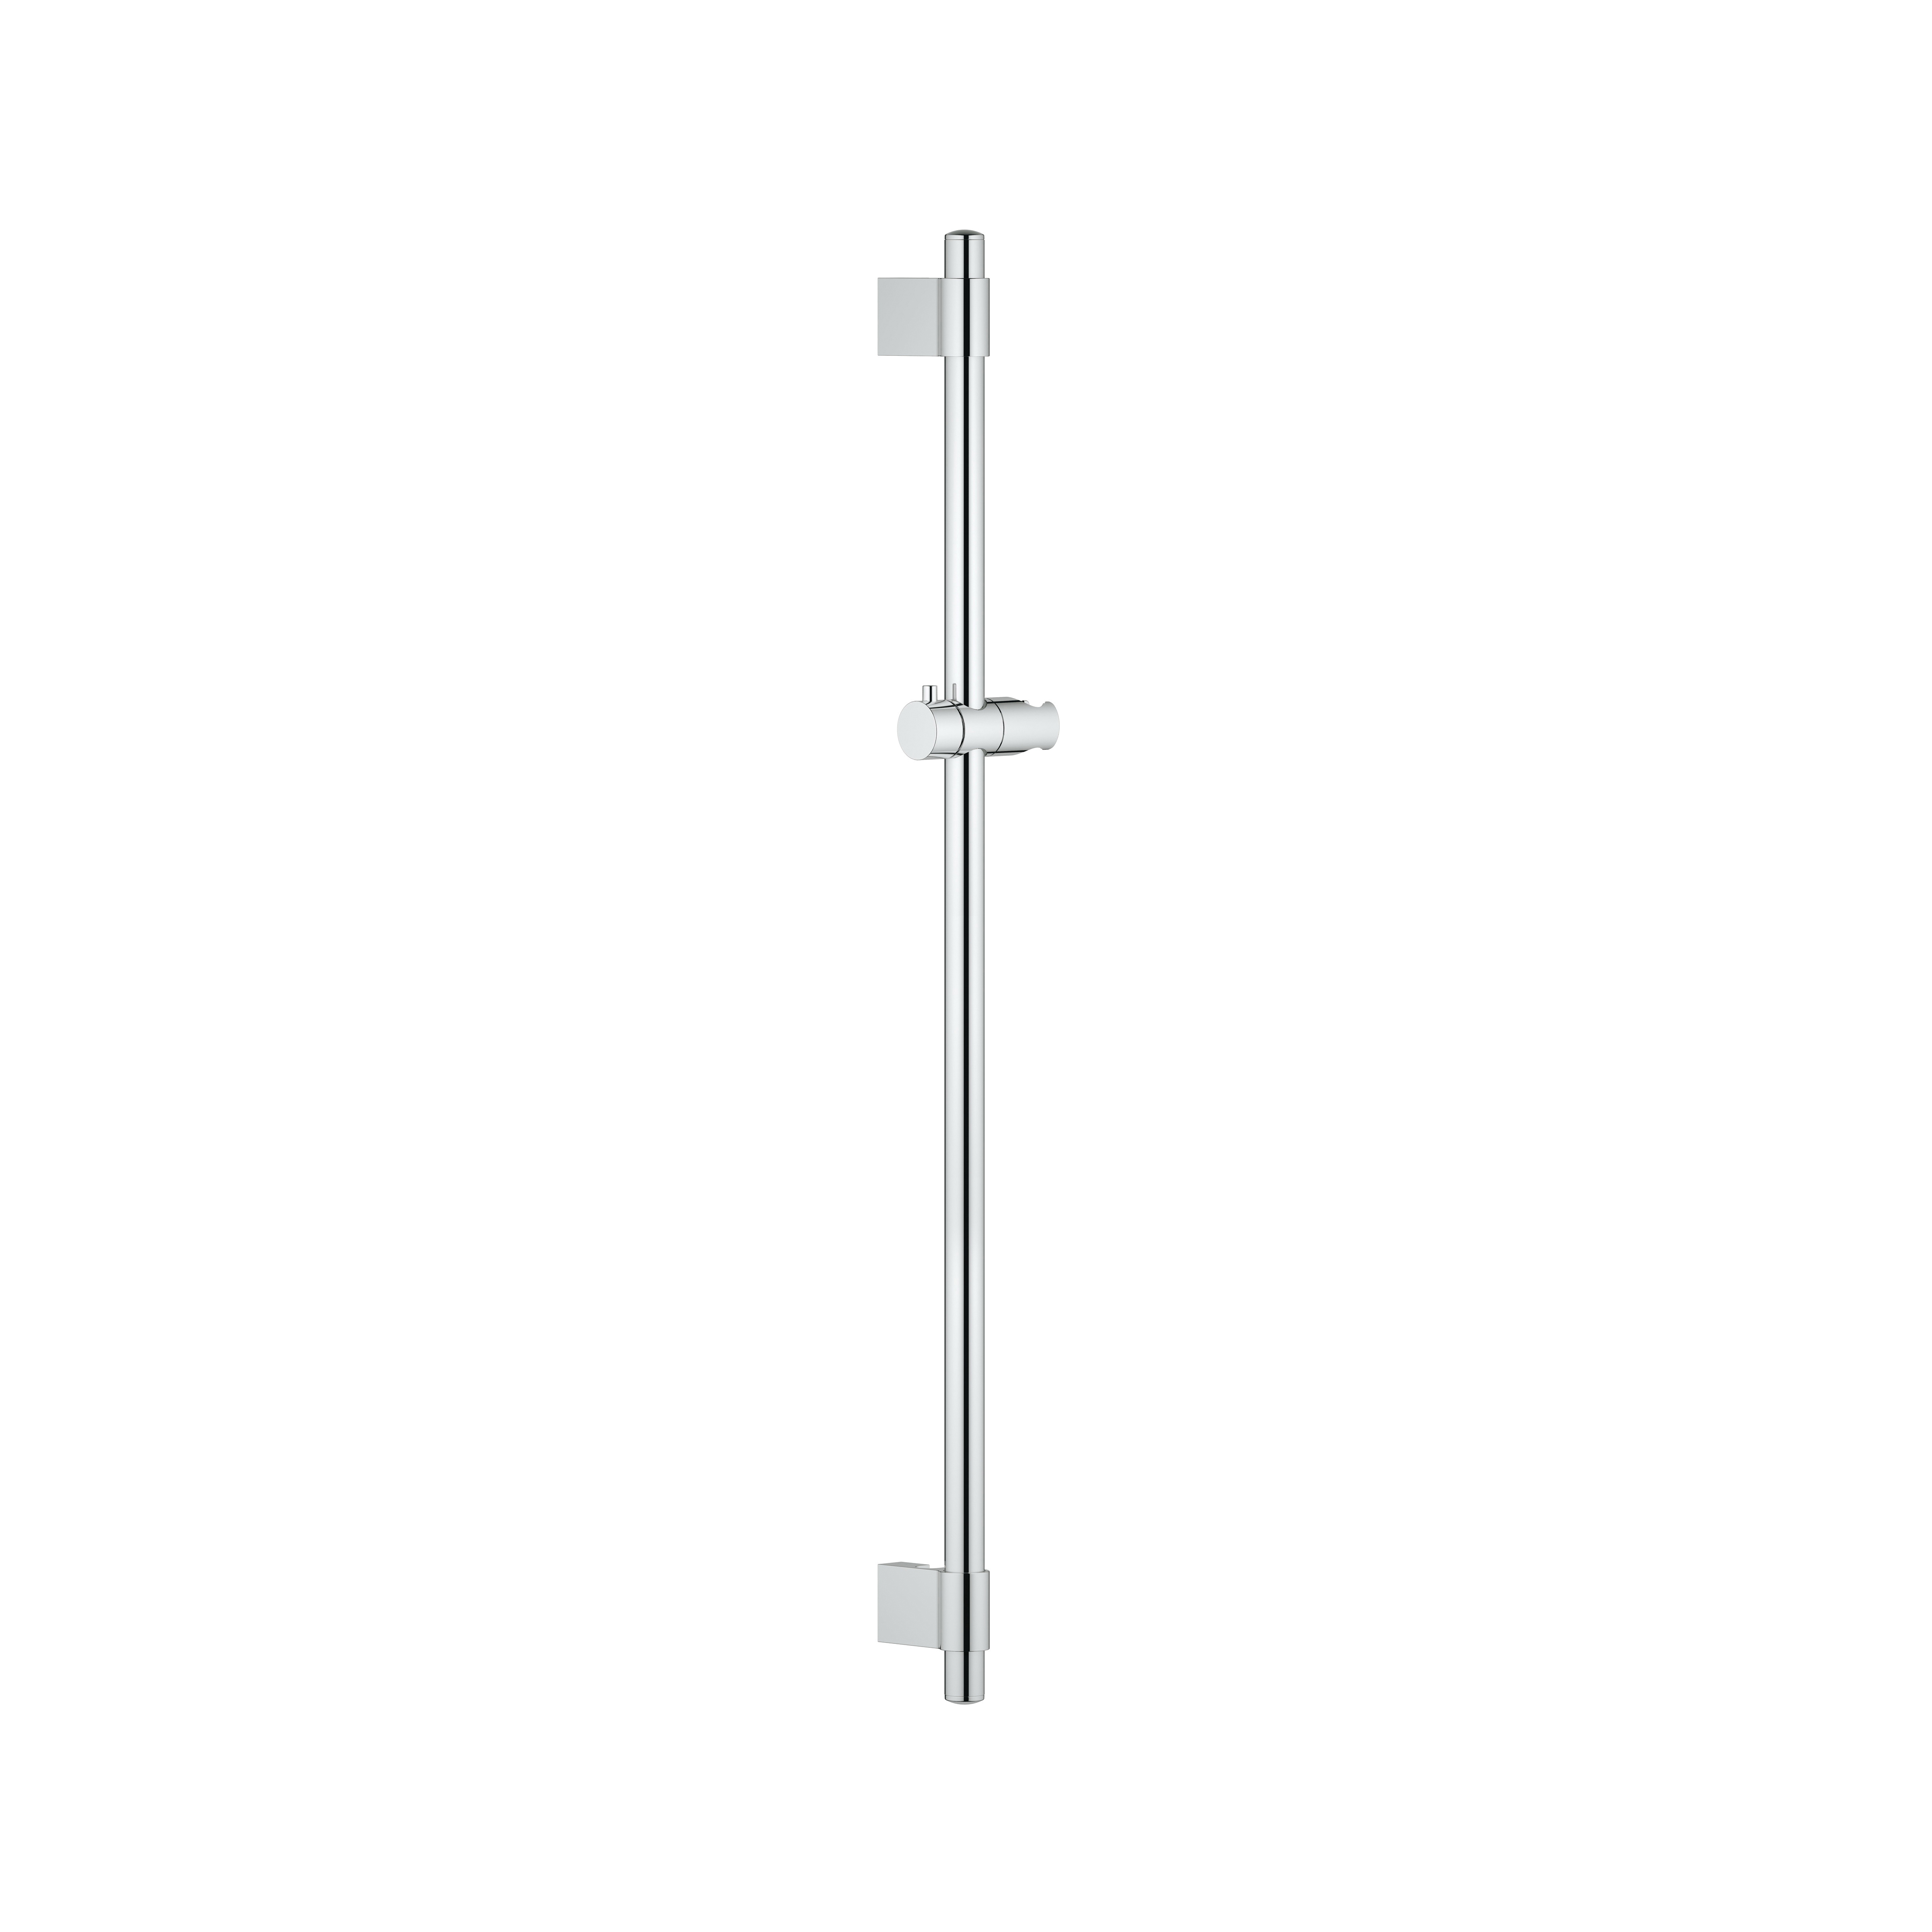 GROHE 27785000 Power&Soul® Shower Bar With Wall Holder, 36 in L Bar, 80 mm OAD, StarLight® Chrome, Import